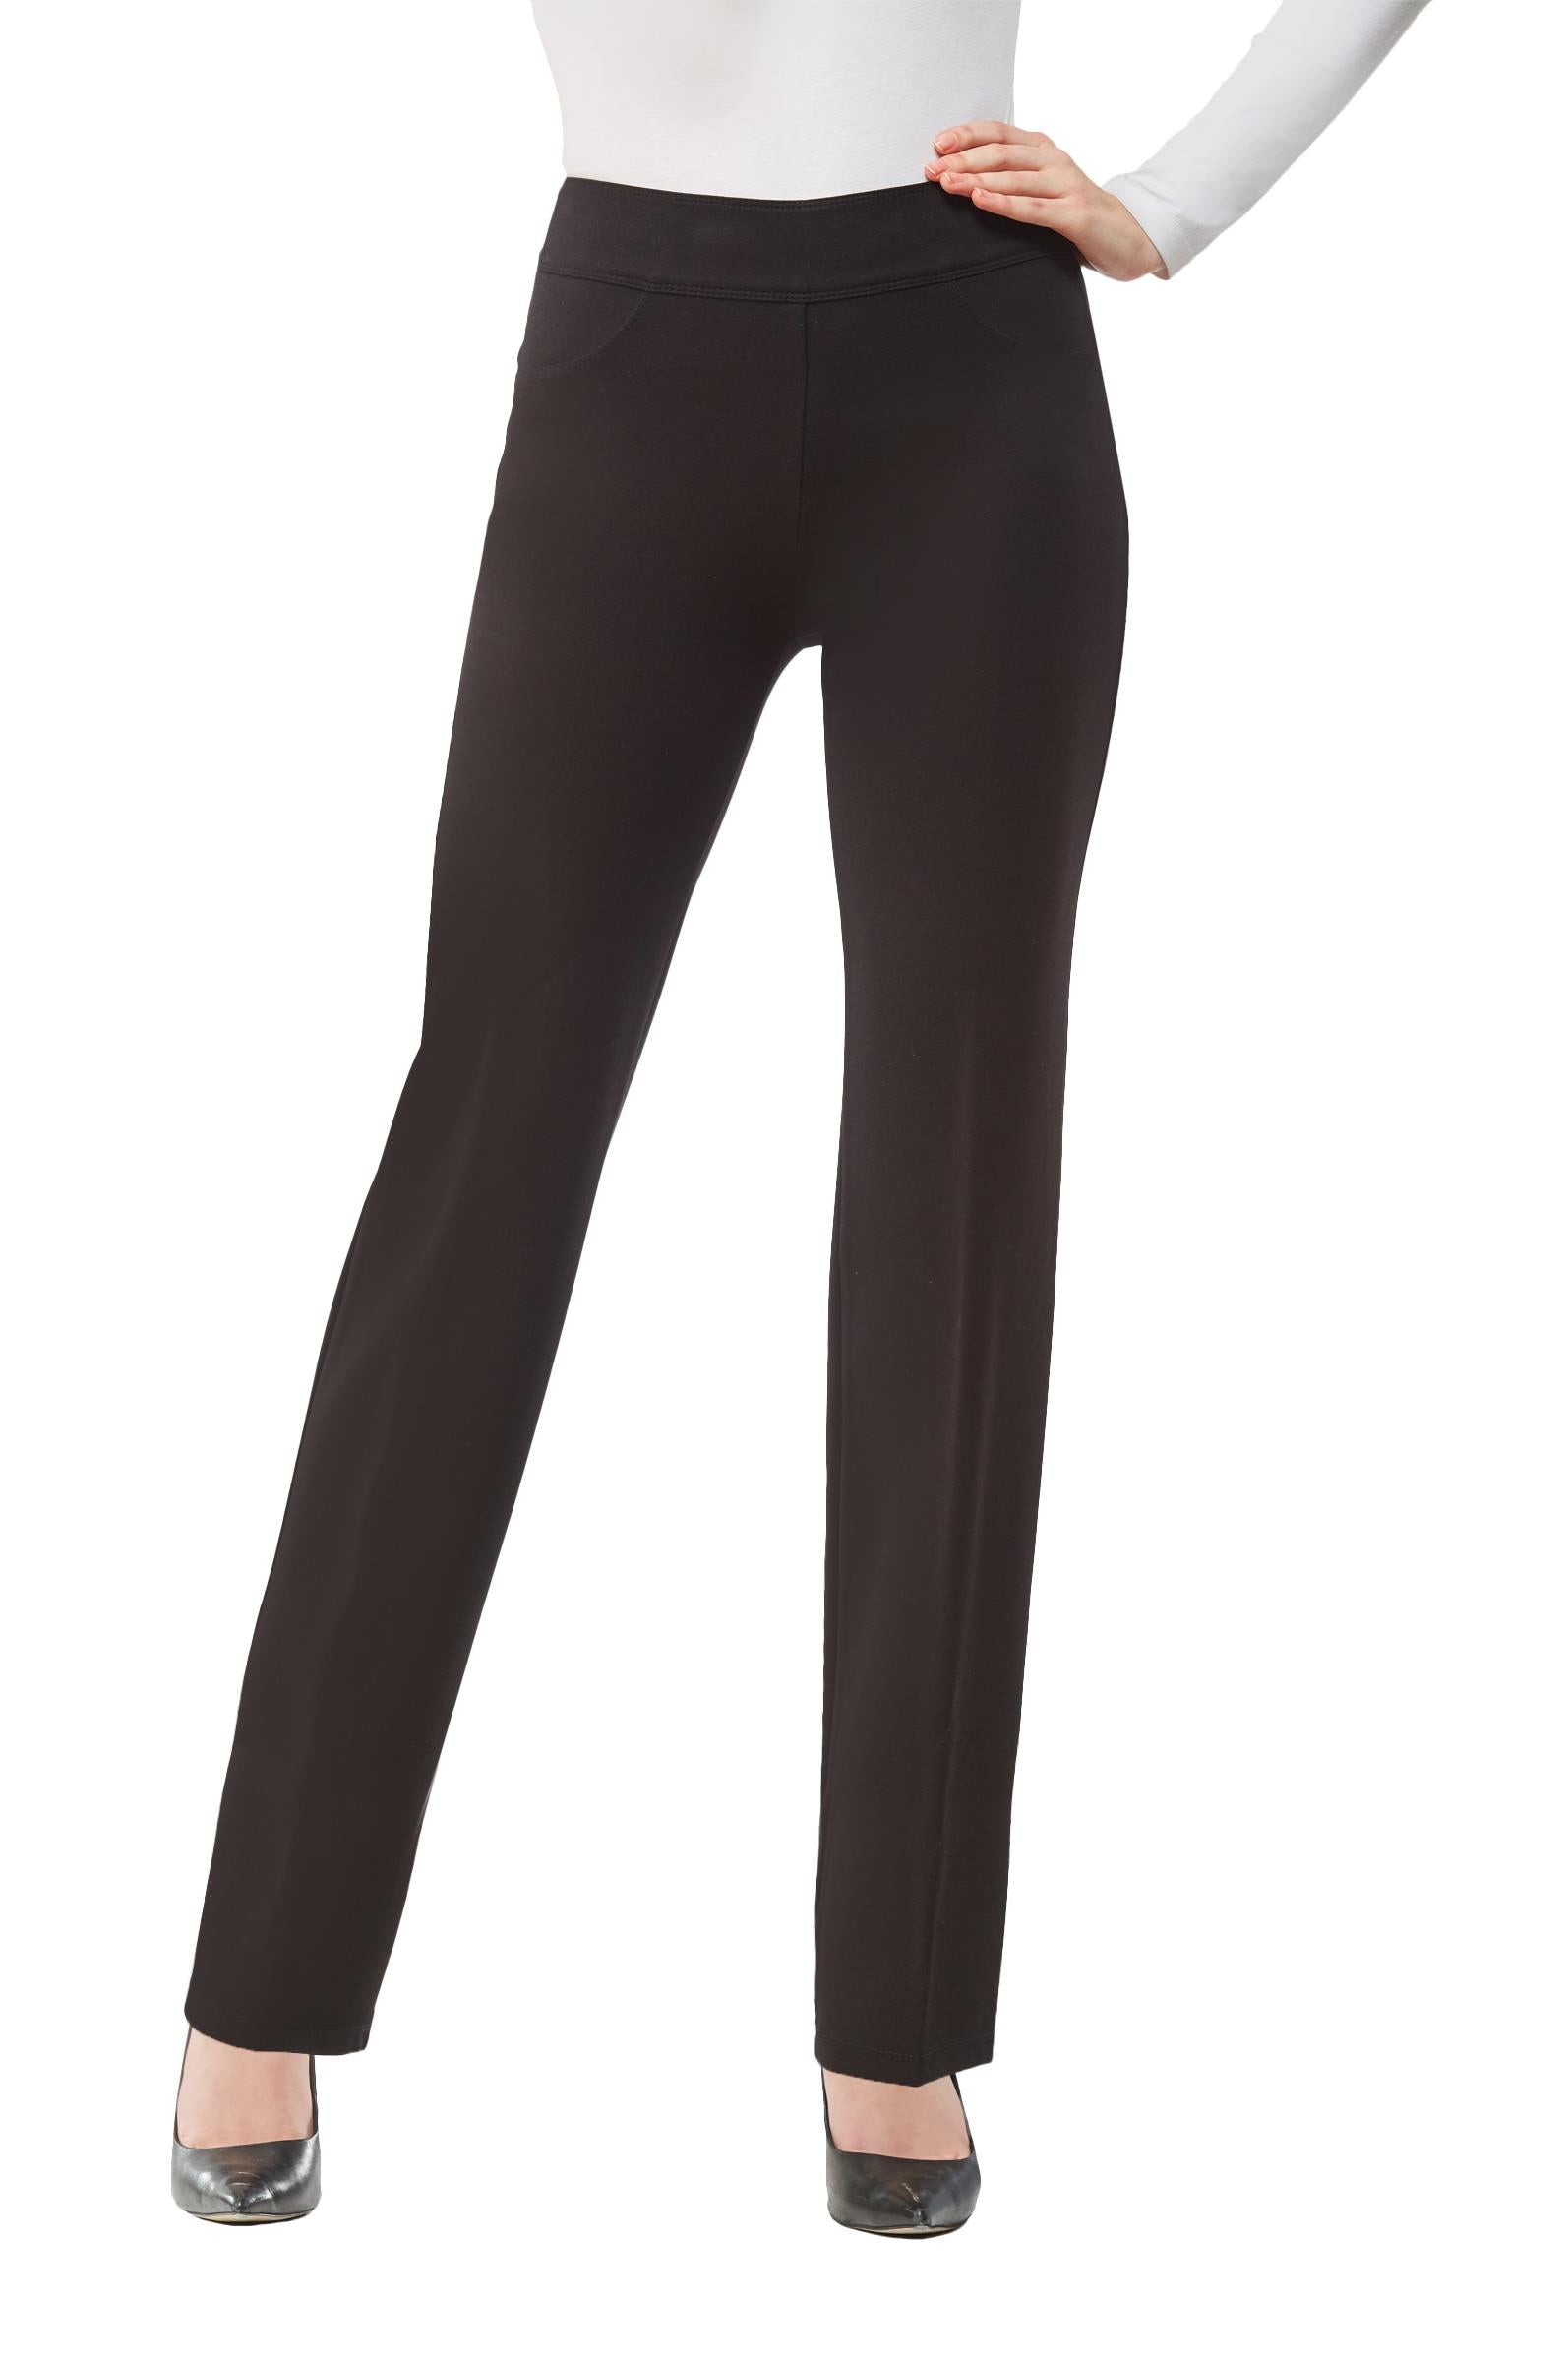 Front view woman wearing black Nygard Slims straight leg luxe ponte pants